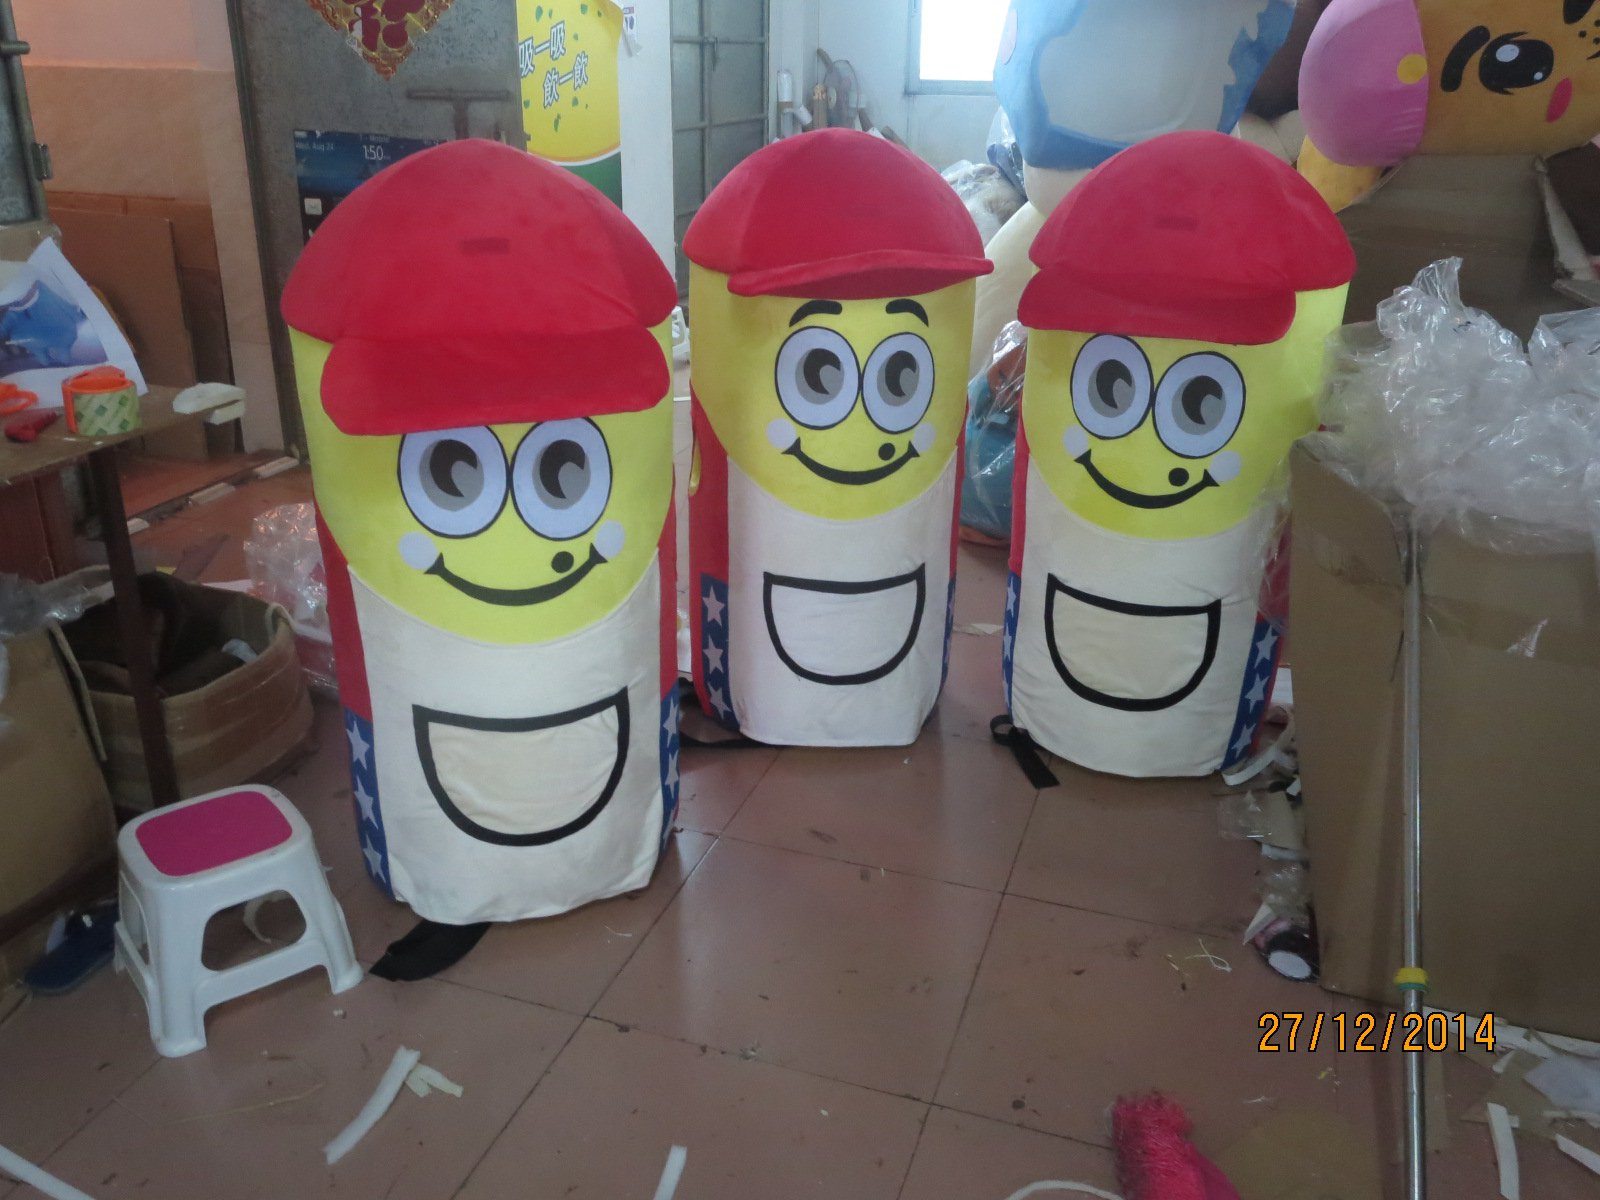 Shopping Malls Promotional Hats Shopping Guide Cartoon Mascot Dolls Promotion Distributed Gifts Cartoon Dolls Clothing Mascot Costume